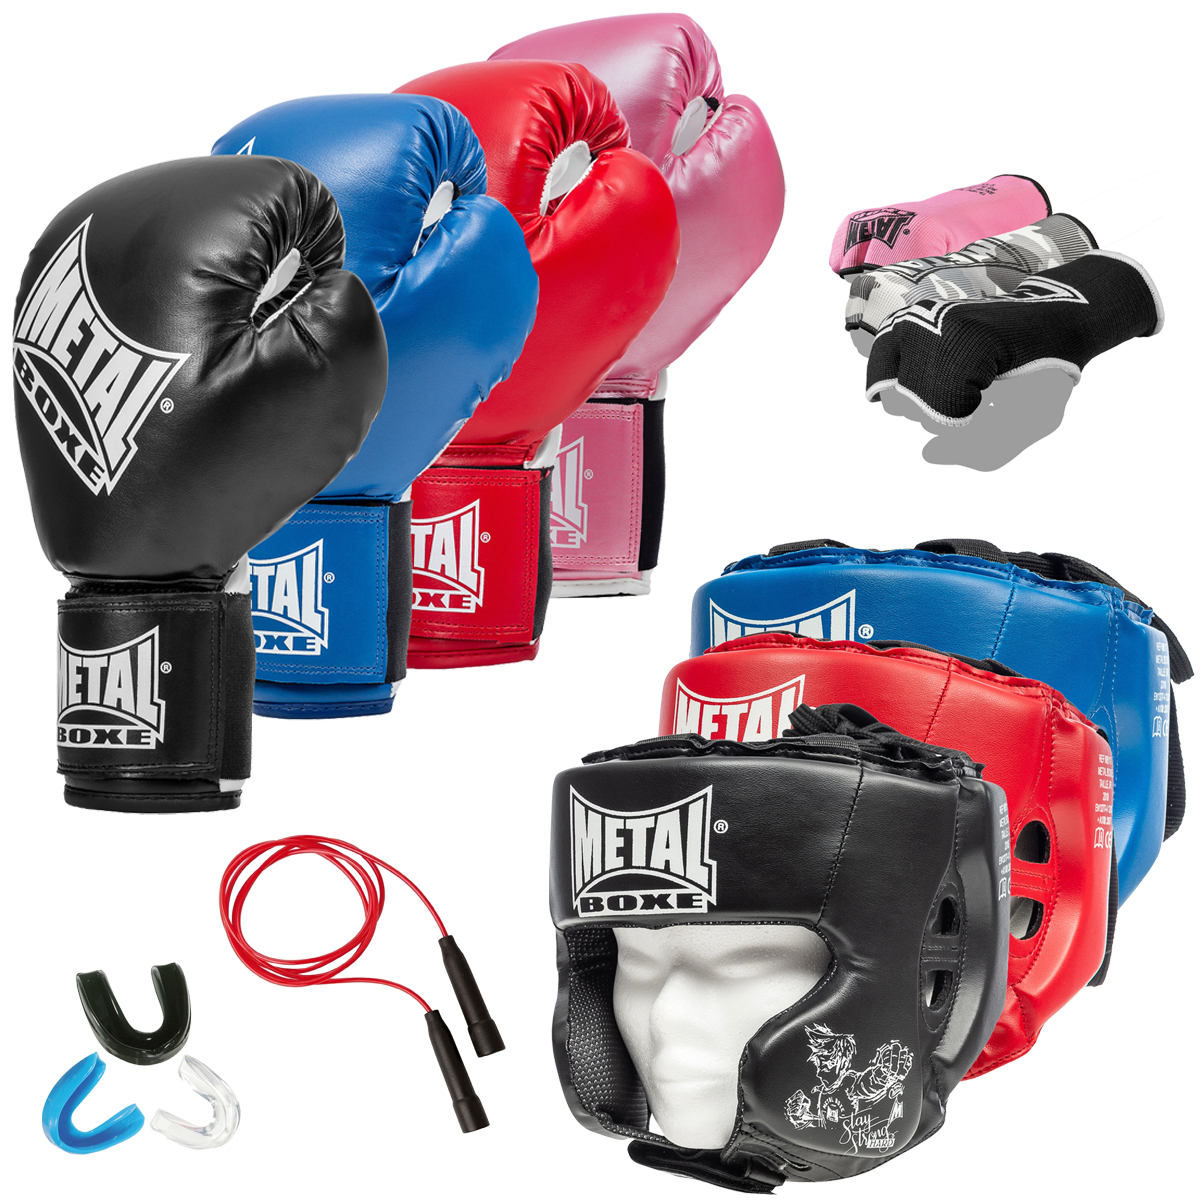 Pack Boxe Anglaise Enfant Complet